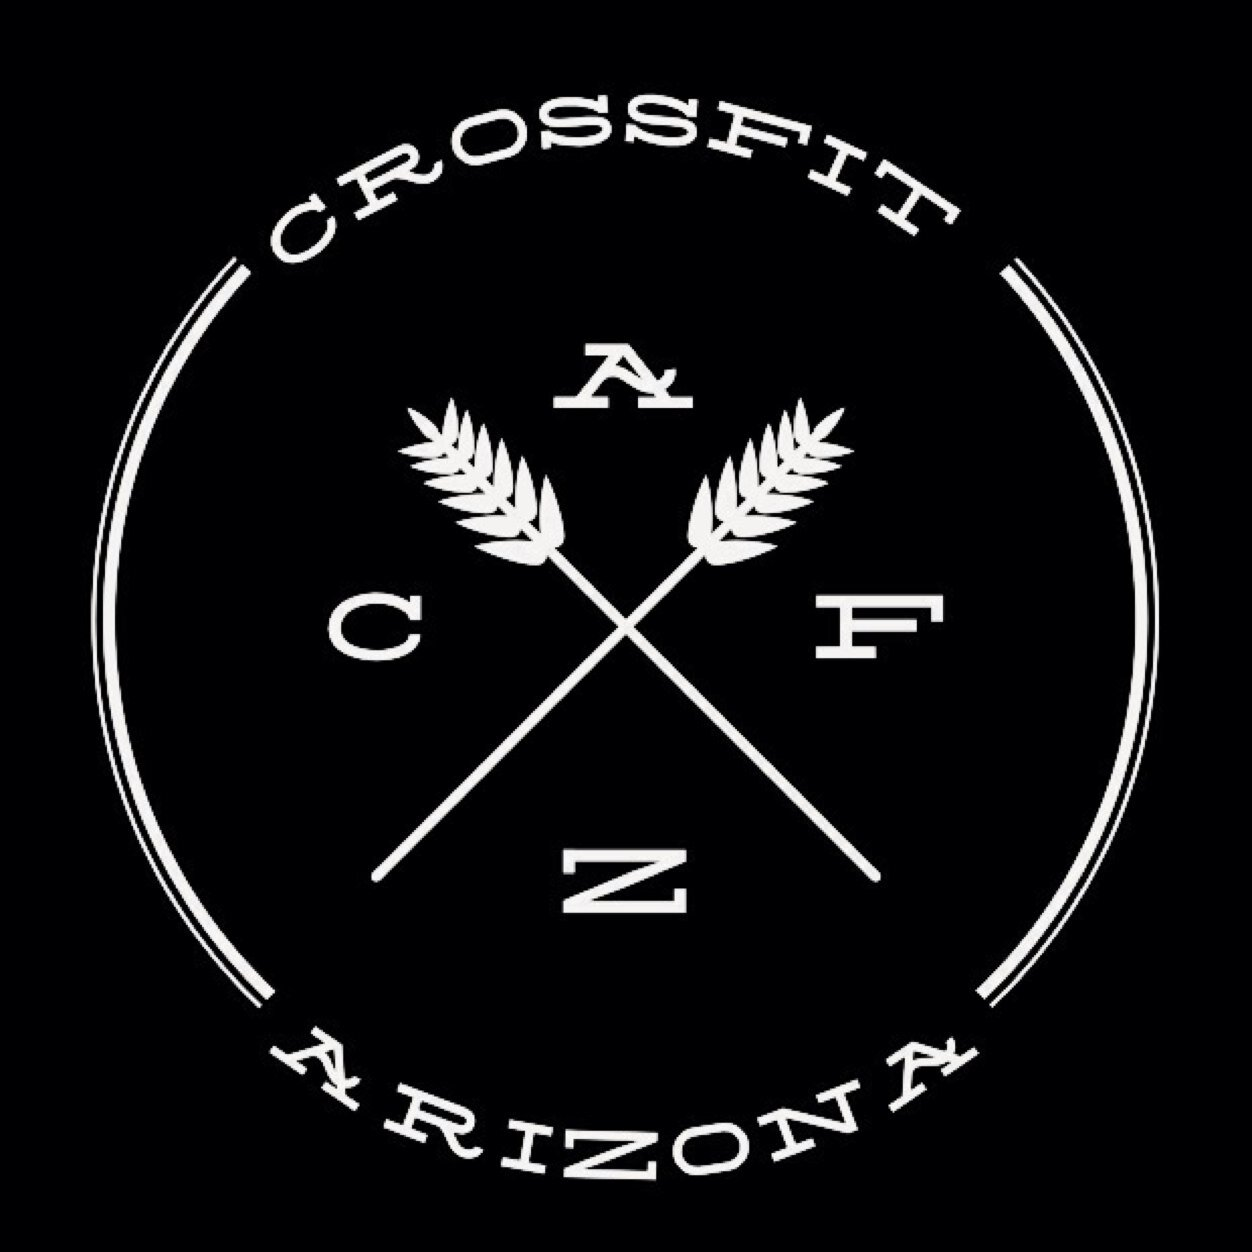 CrossFit Connections on Twitter: